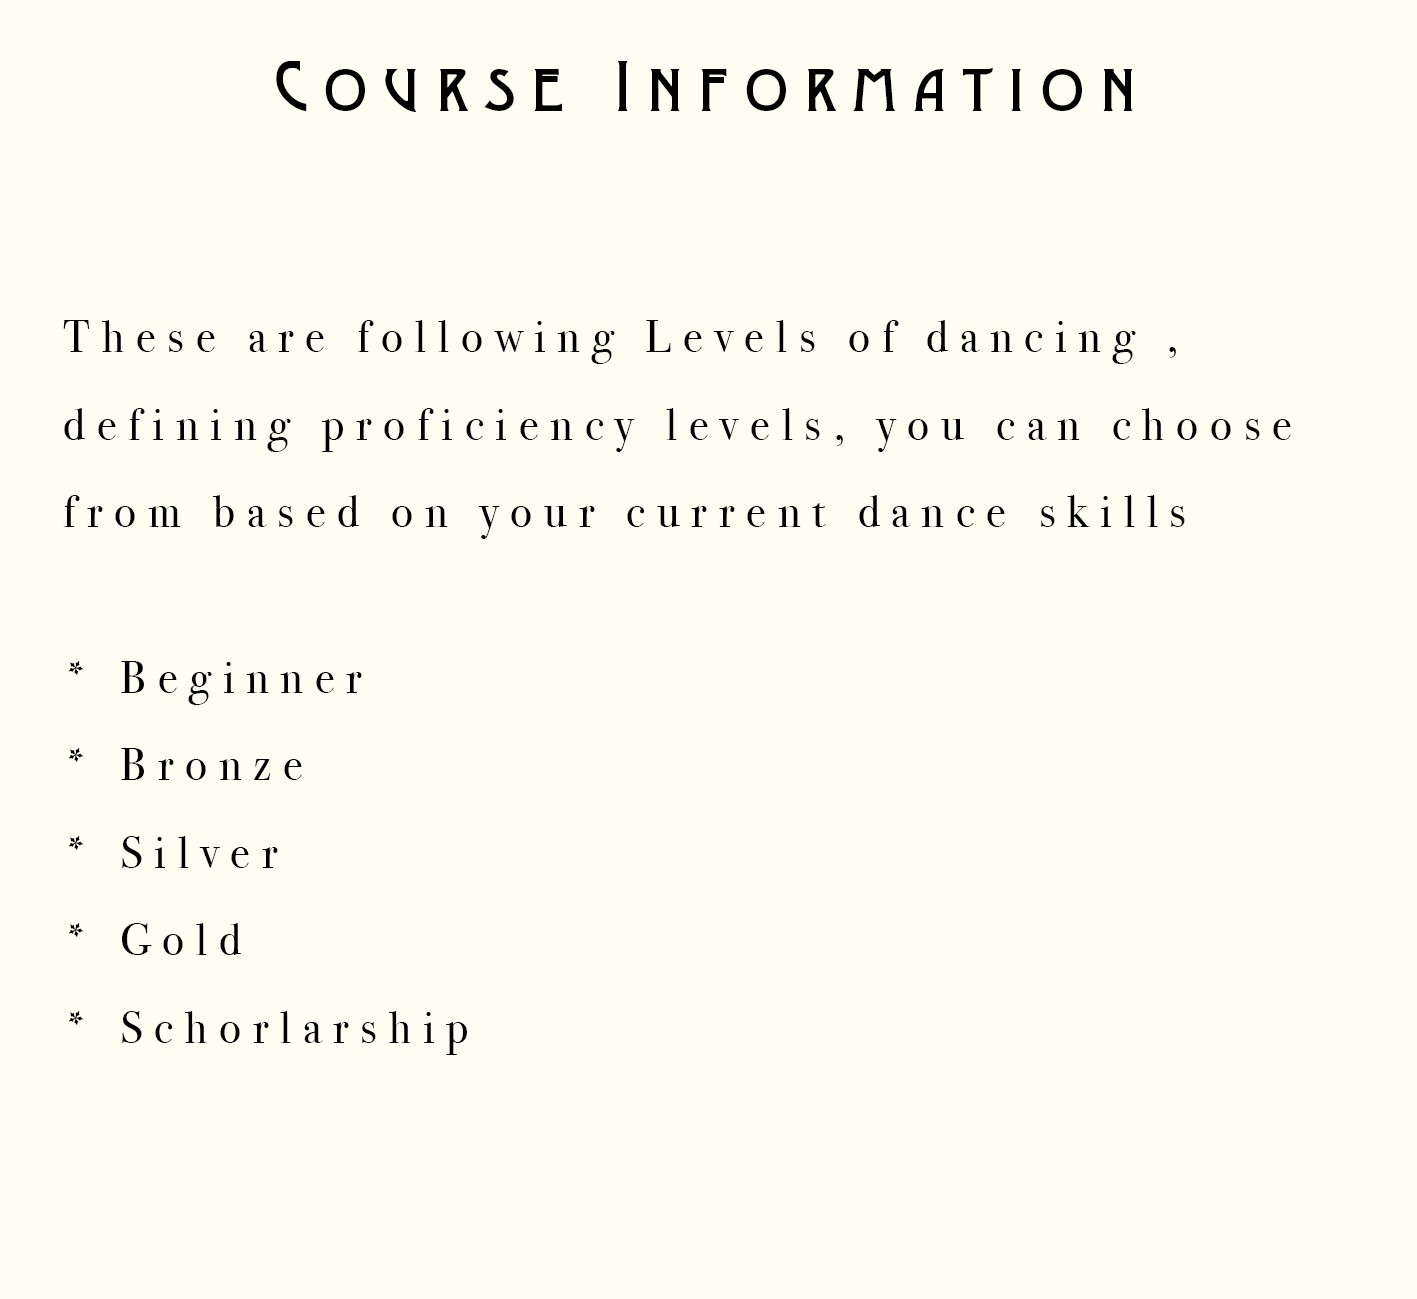 CourseInformation.png